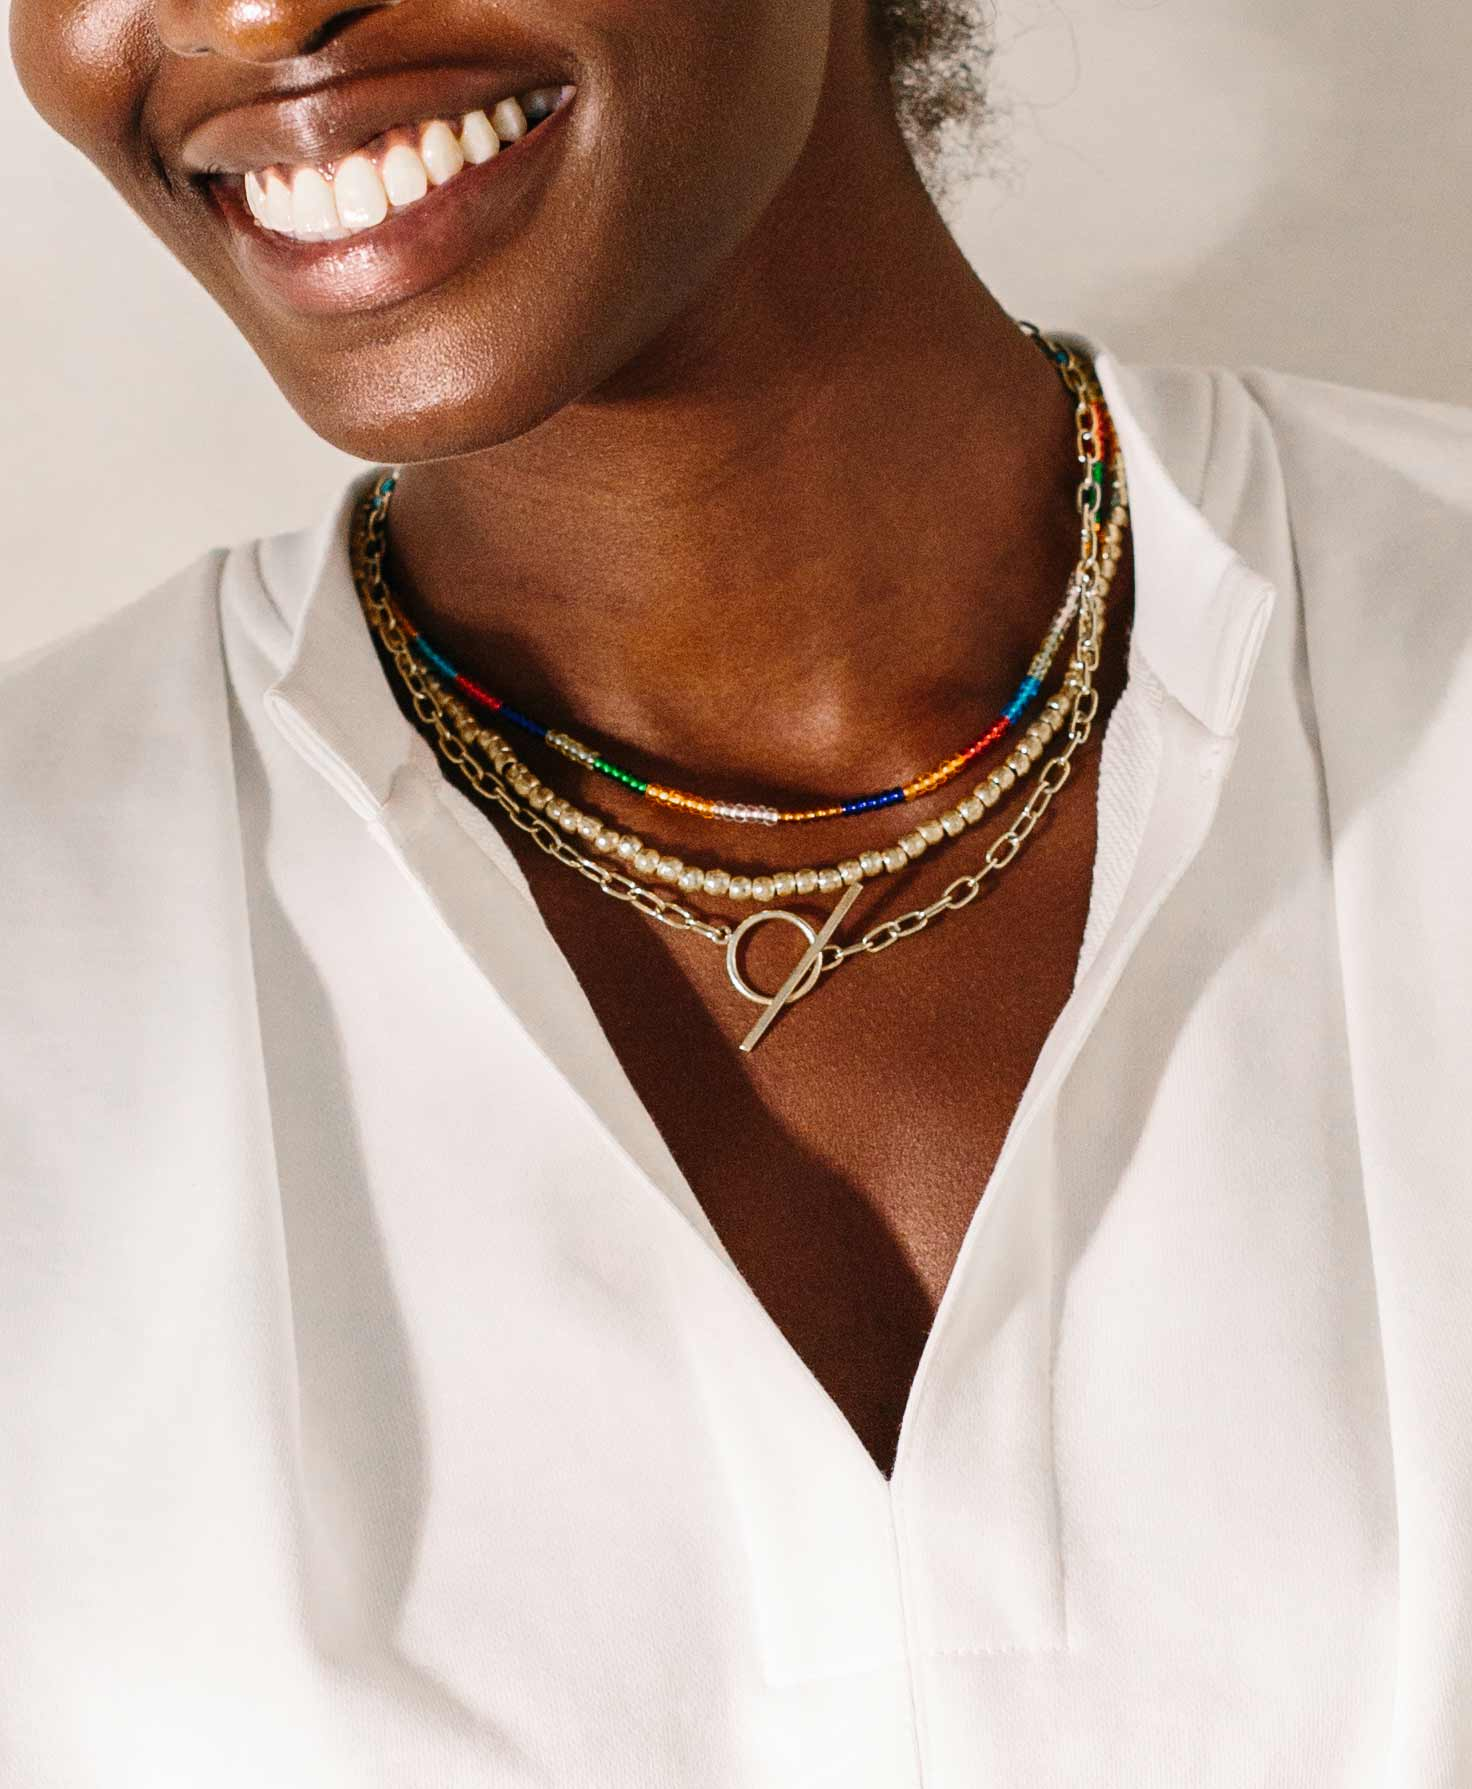 A model wears the short Infinity Necklace with two other short necklaces, the Artillery Pearl Necklace and Chromatic Necklace. Together, the necklaces create a layered choker look.